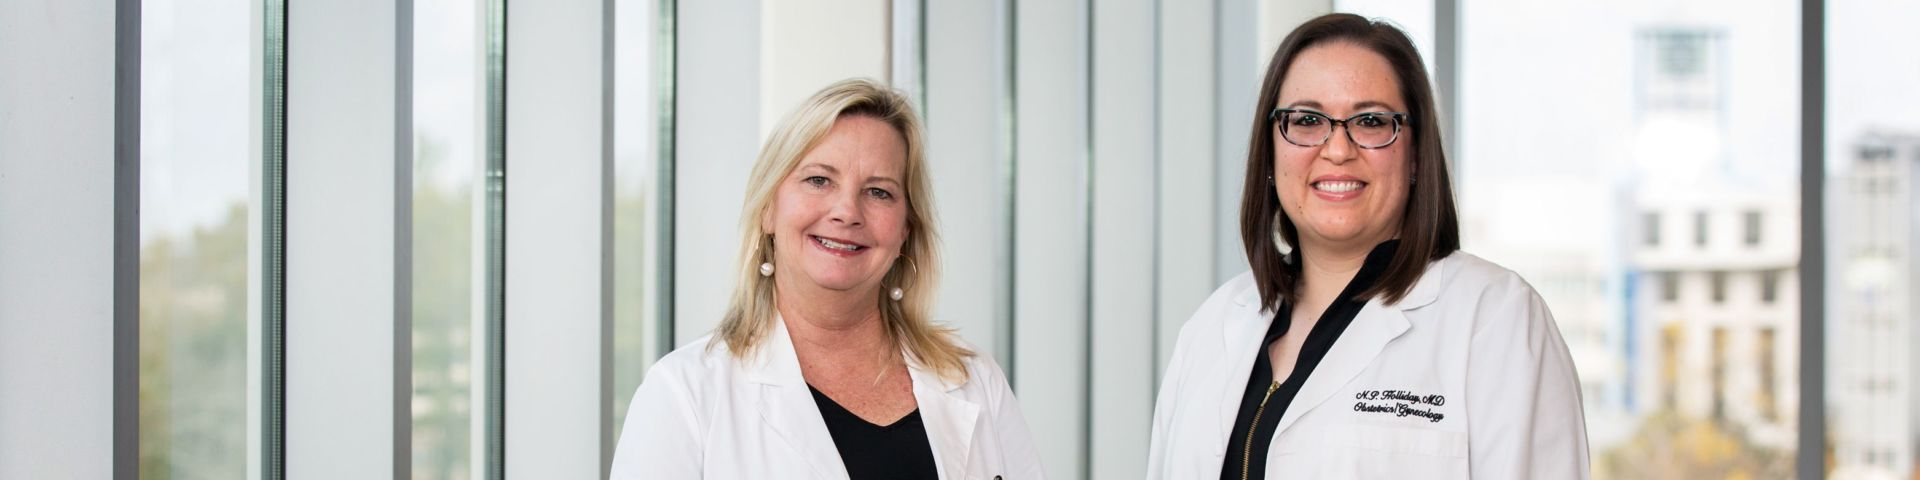 Dr Tracy Roth and Dr Nicolette Holliday 2021 01 29 145716 1